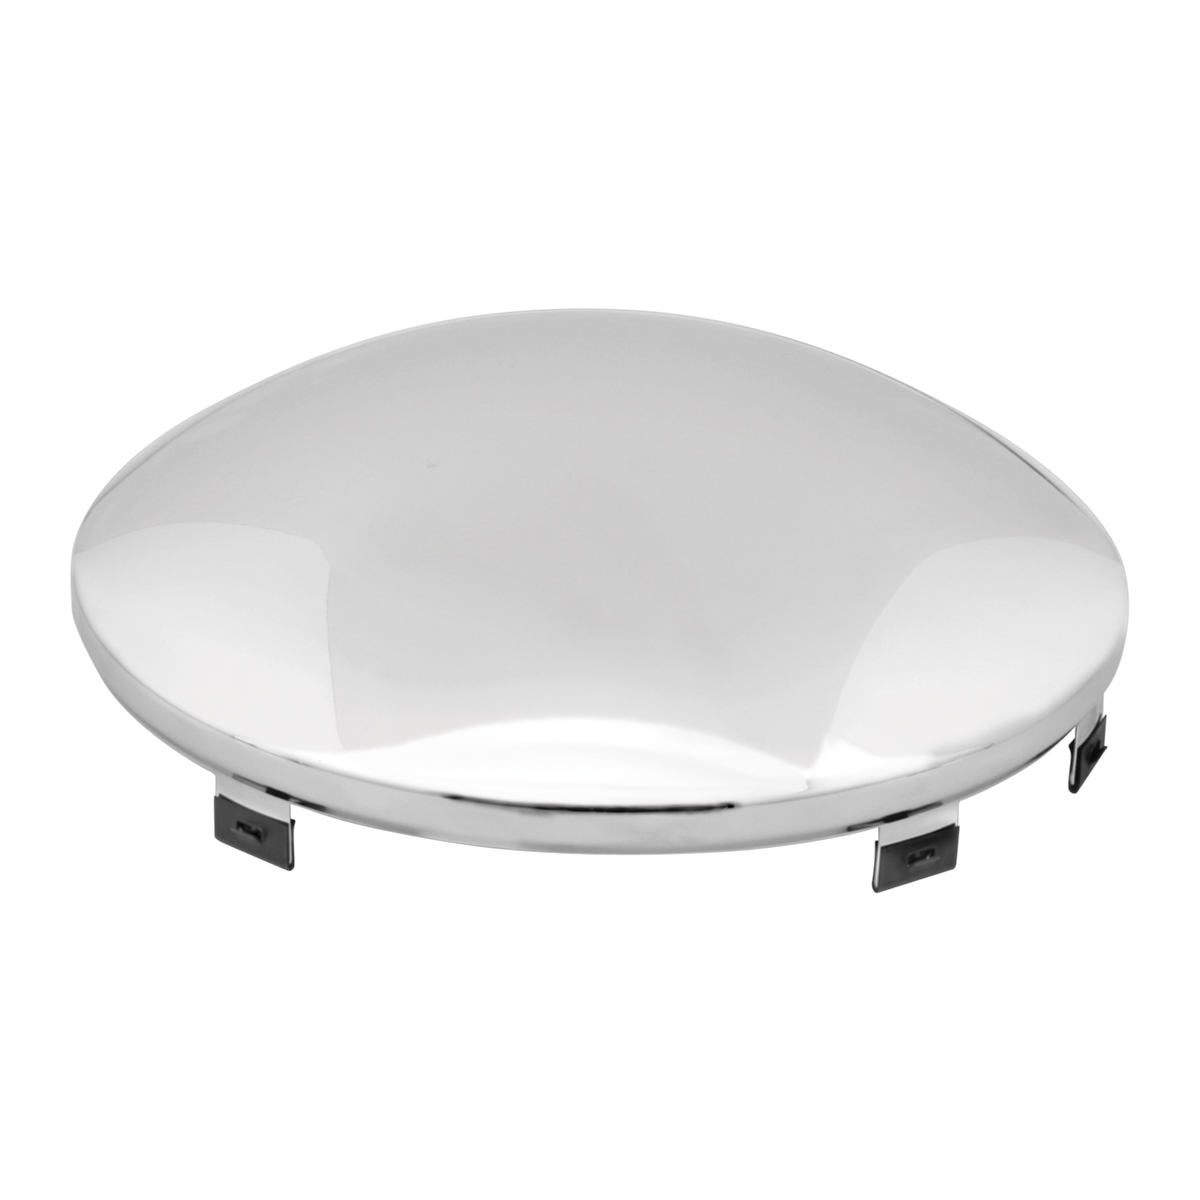 Chrome Plated Universal Standard Front Hub Cap - Top View